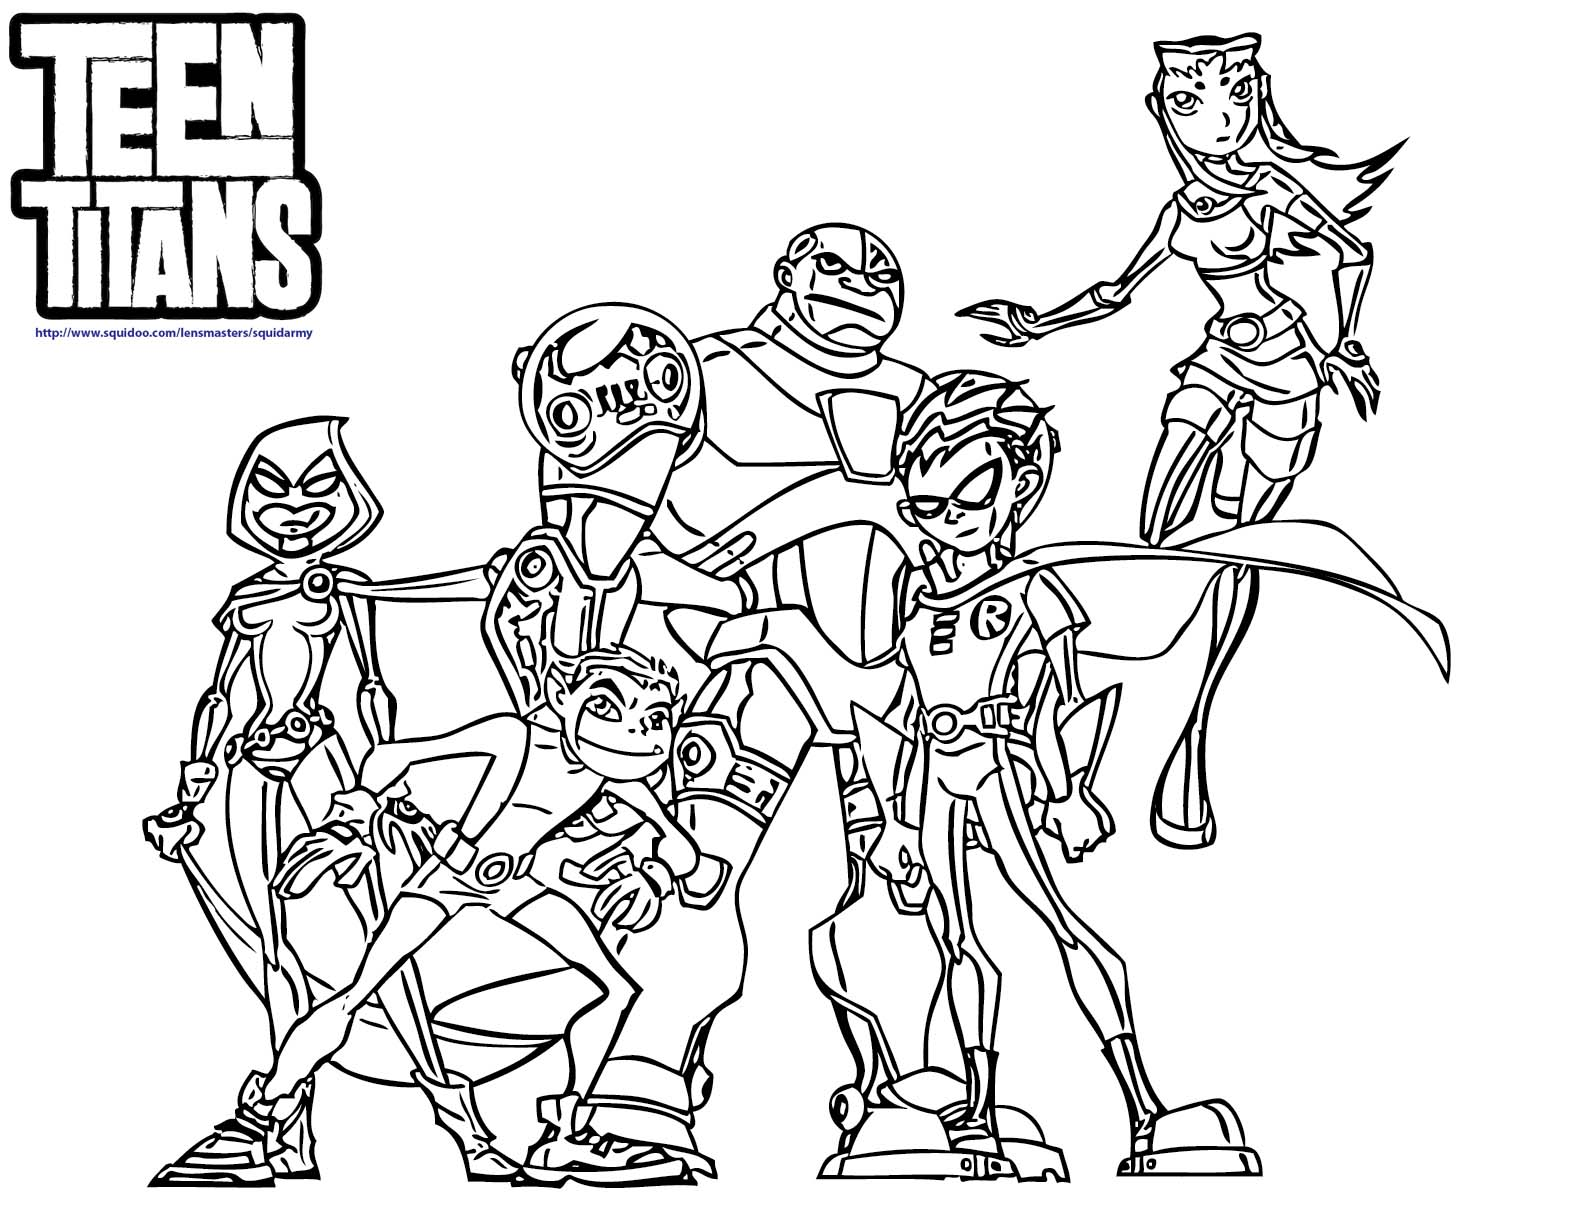 teen-titans coloring pages,printable,coloring pages